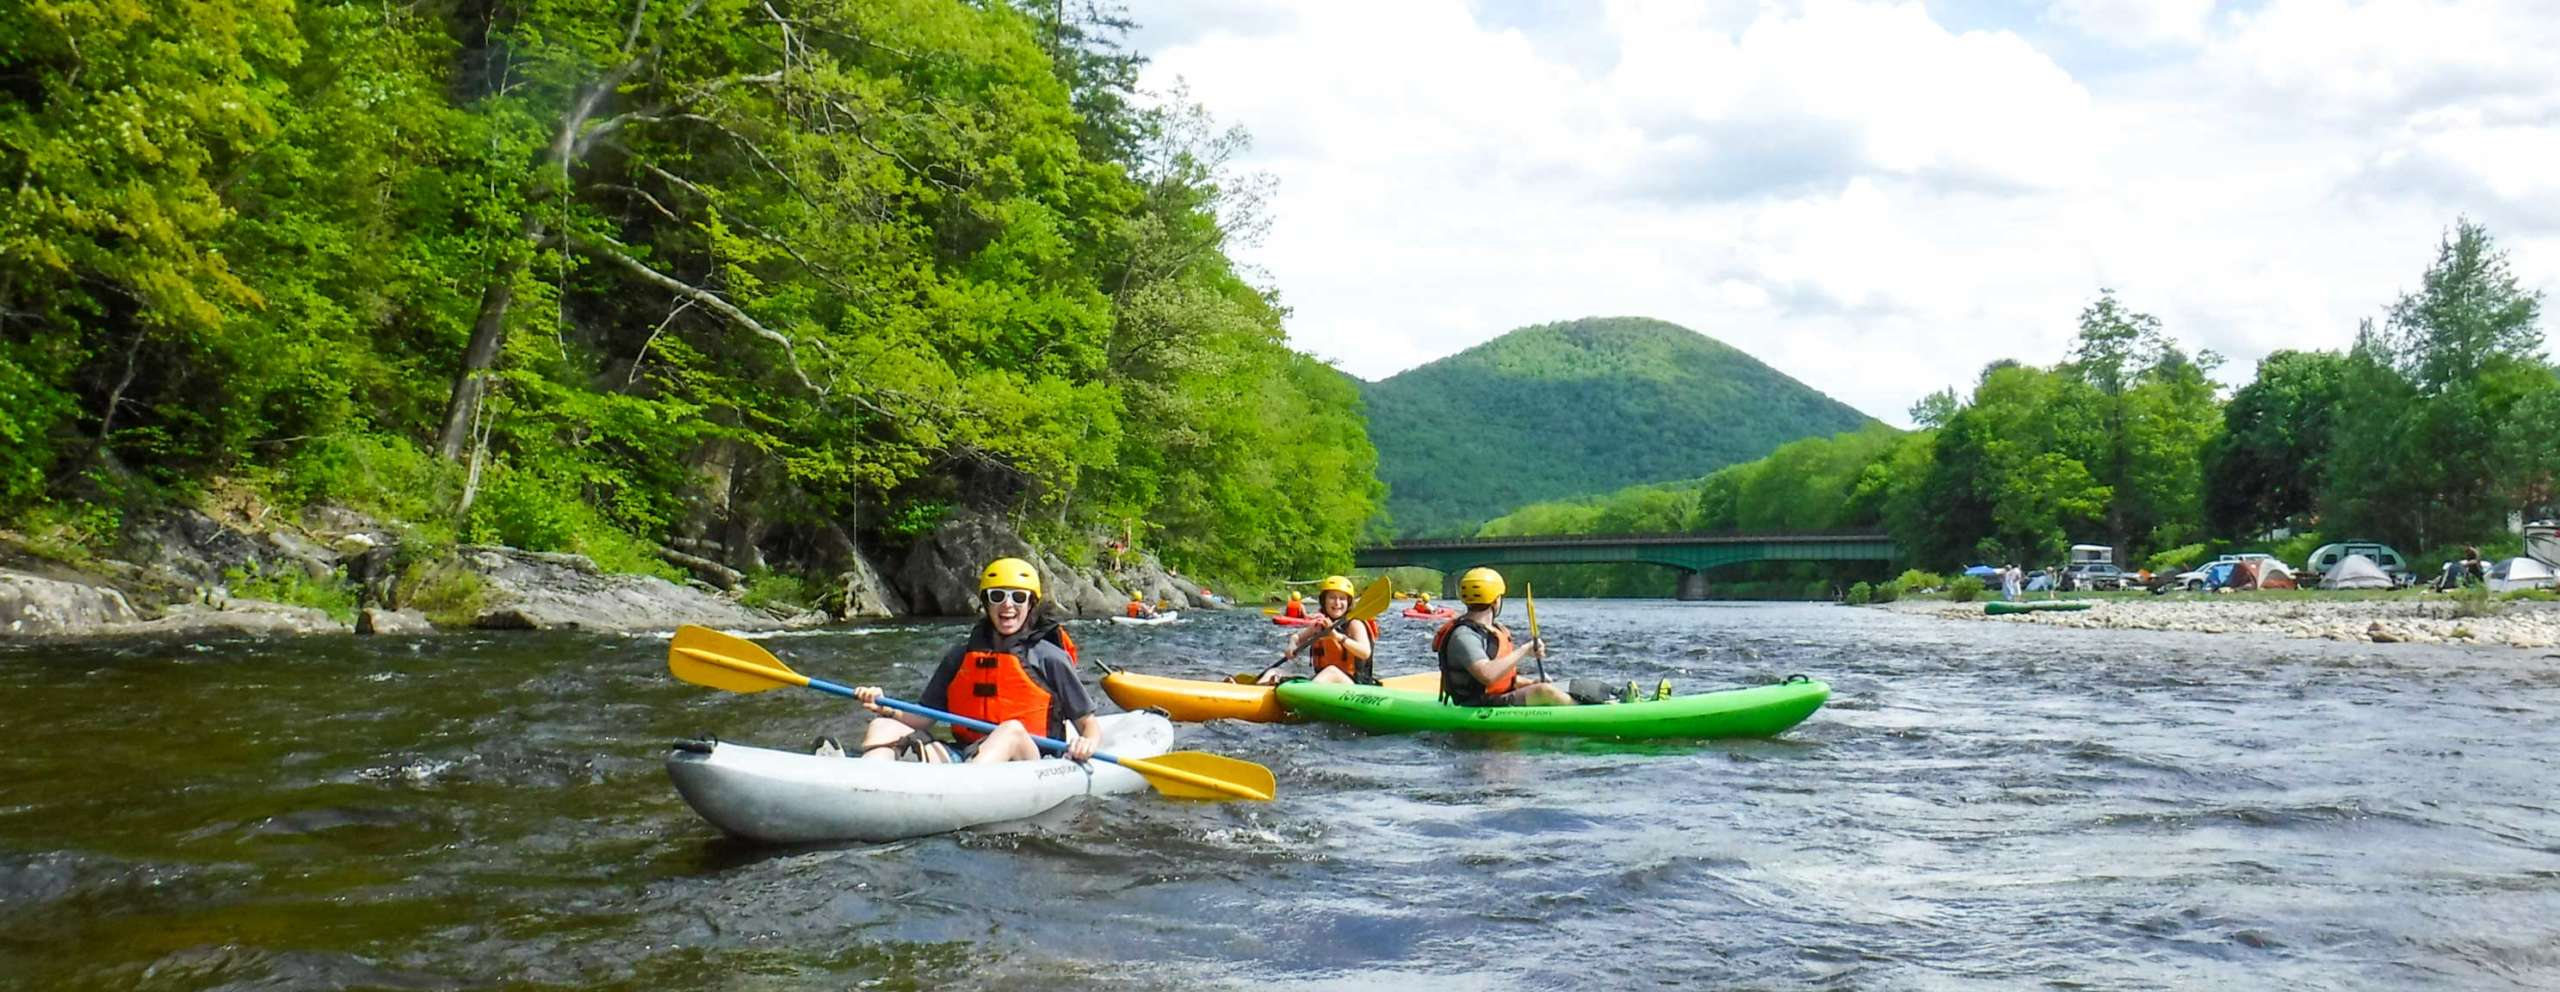 Group of kayakers on the river